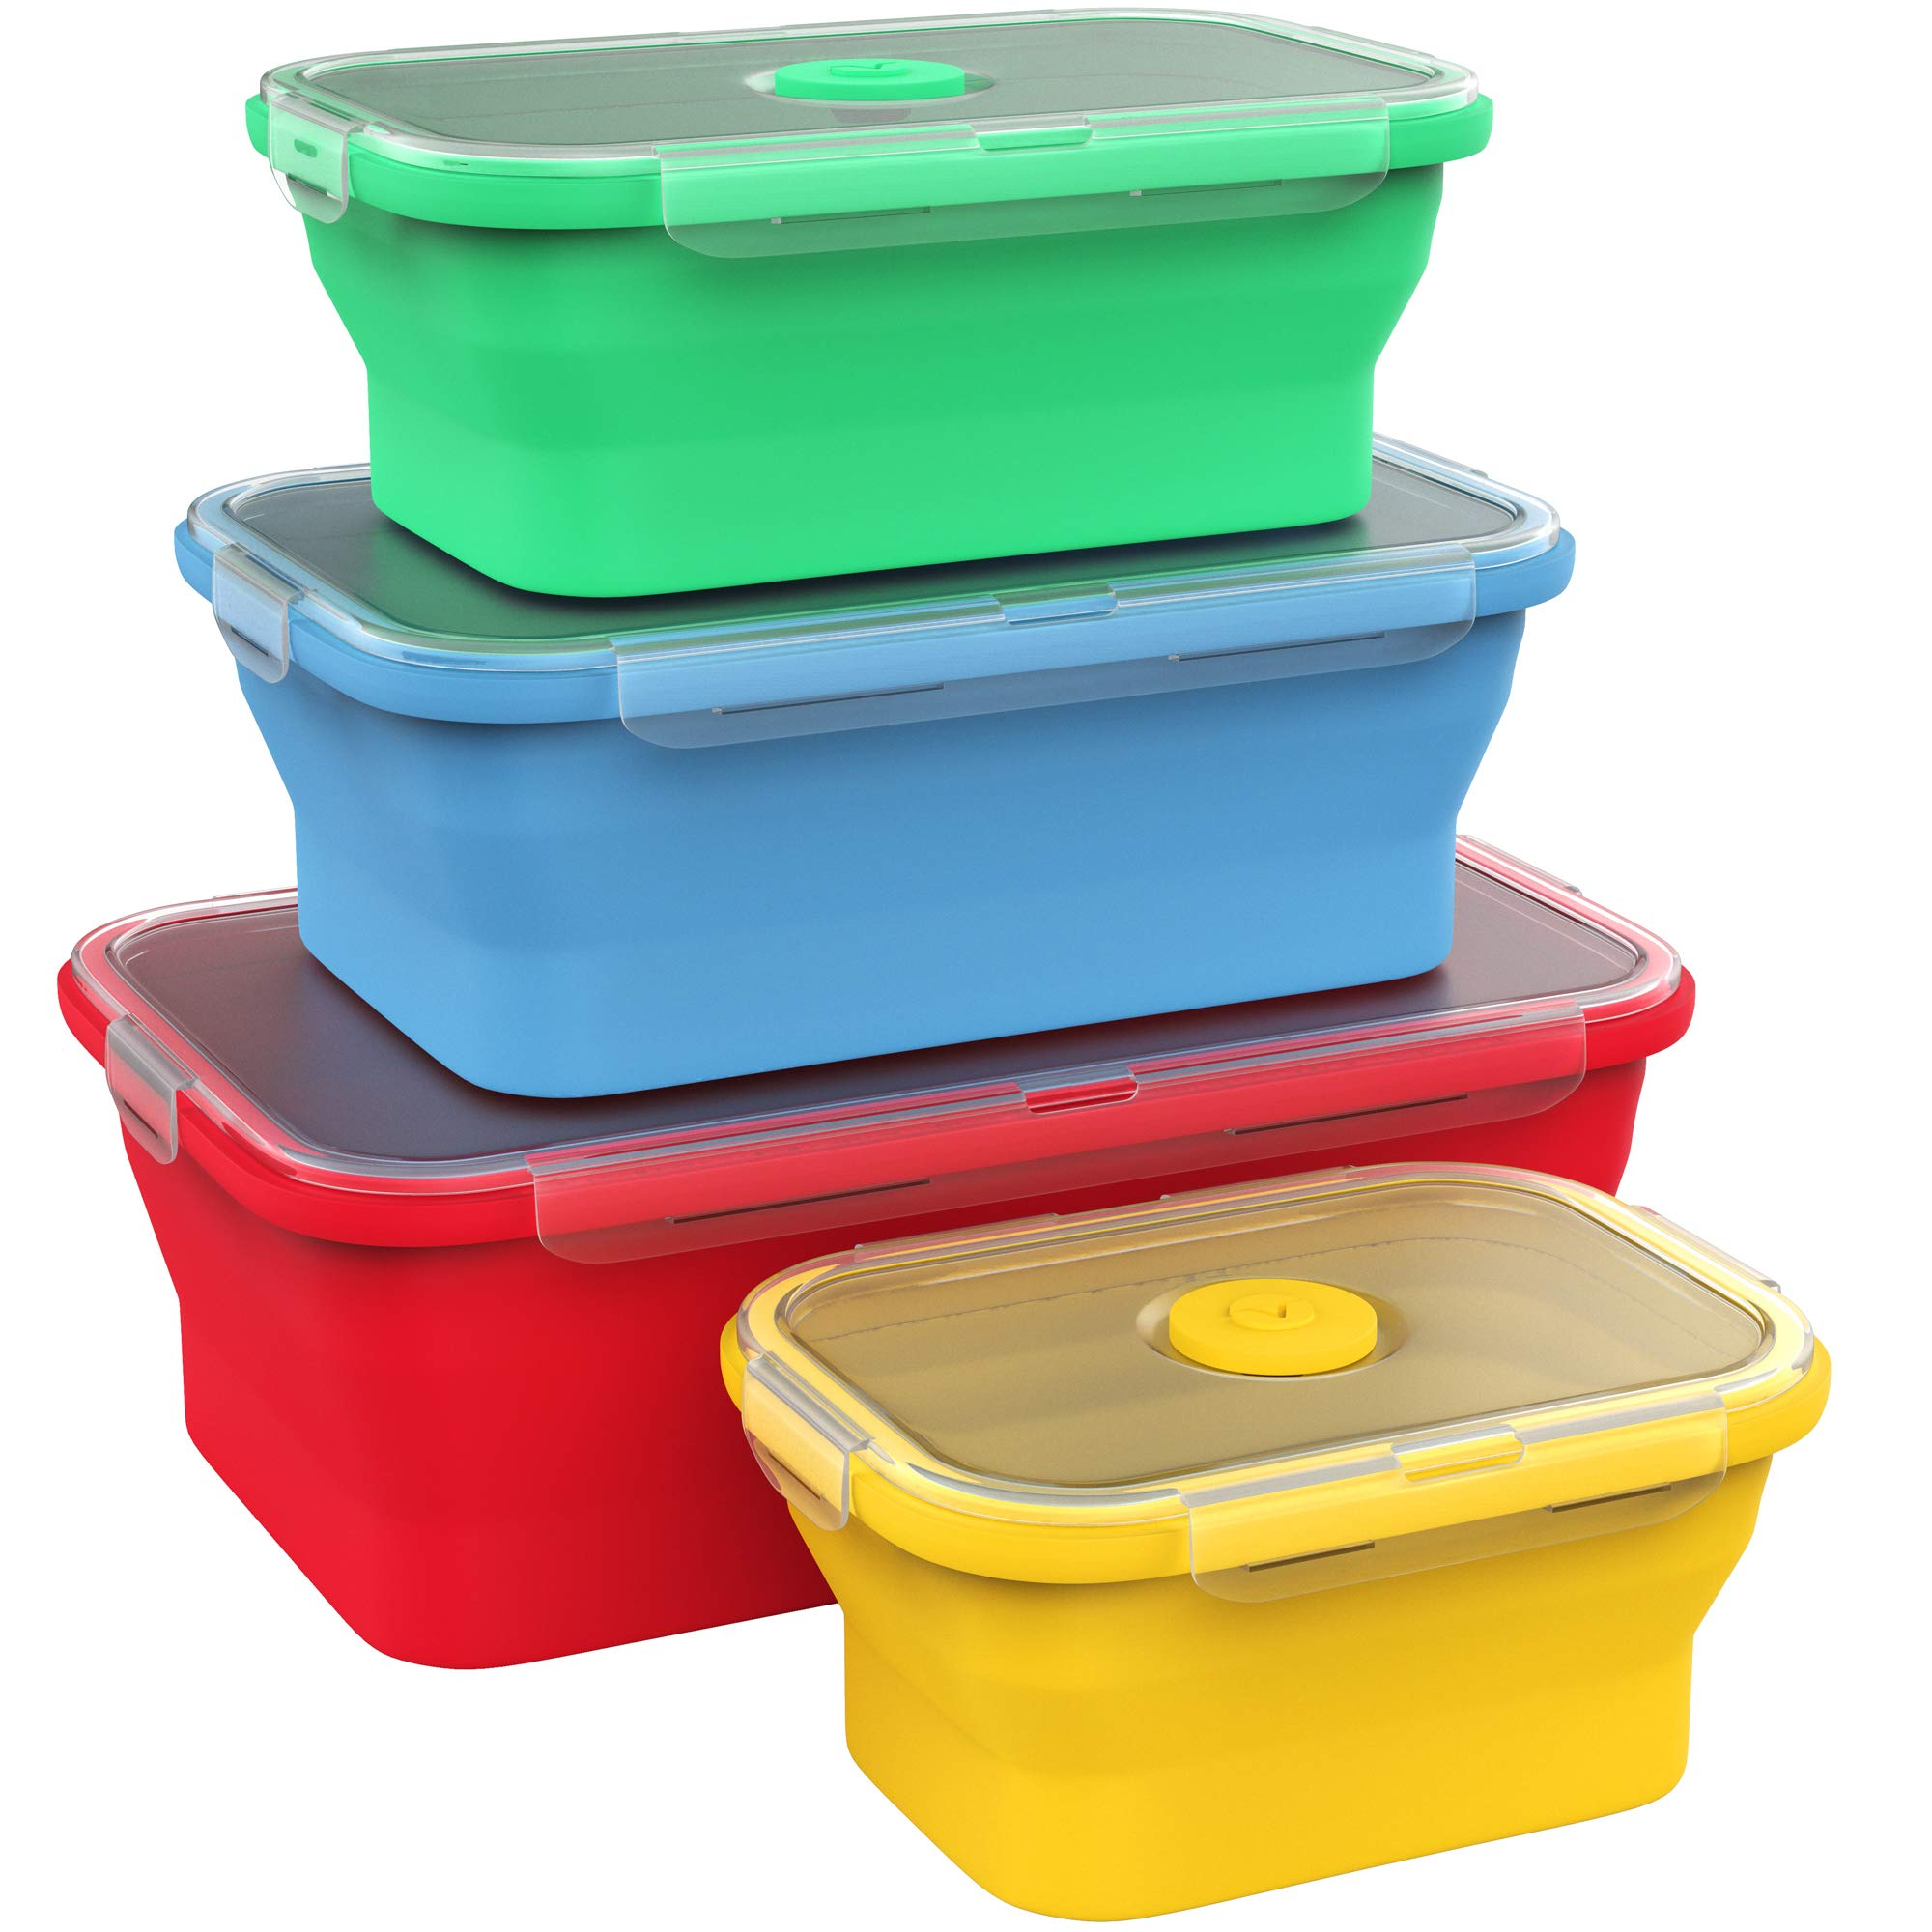 Best lunch containers for food   Amazon.com